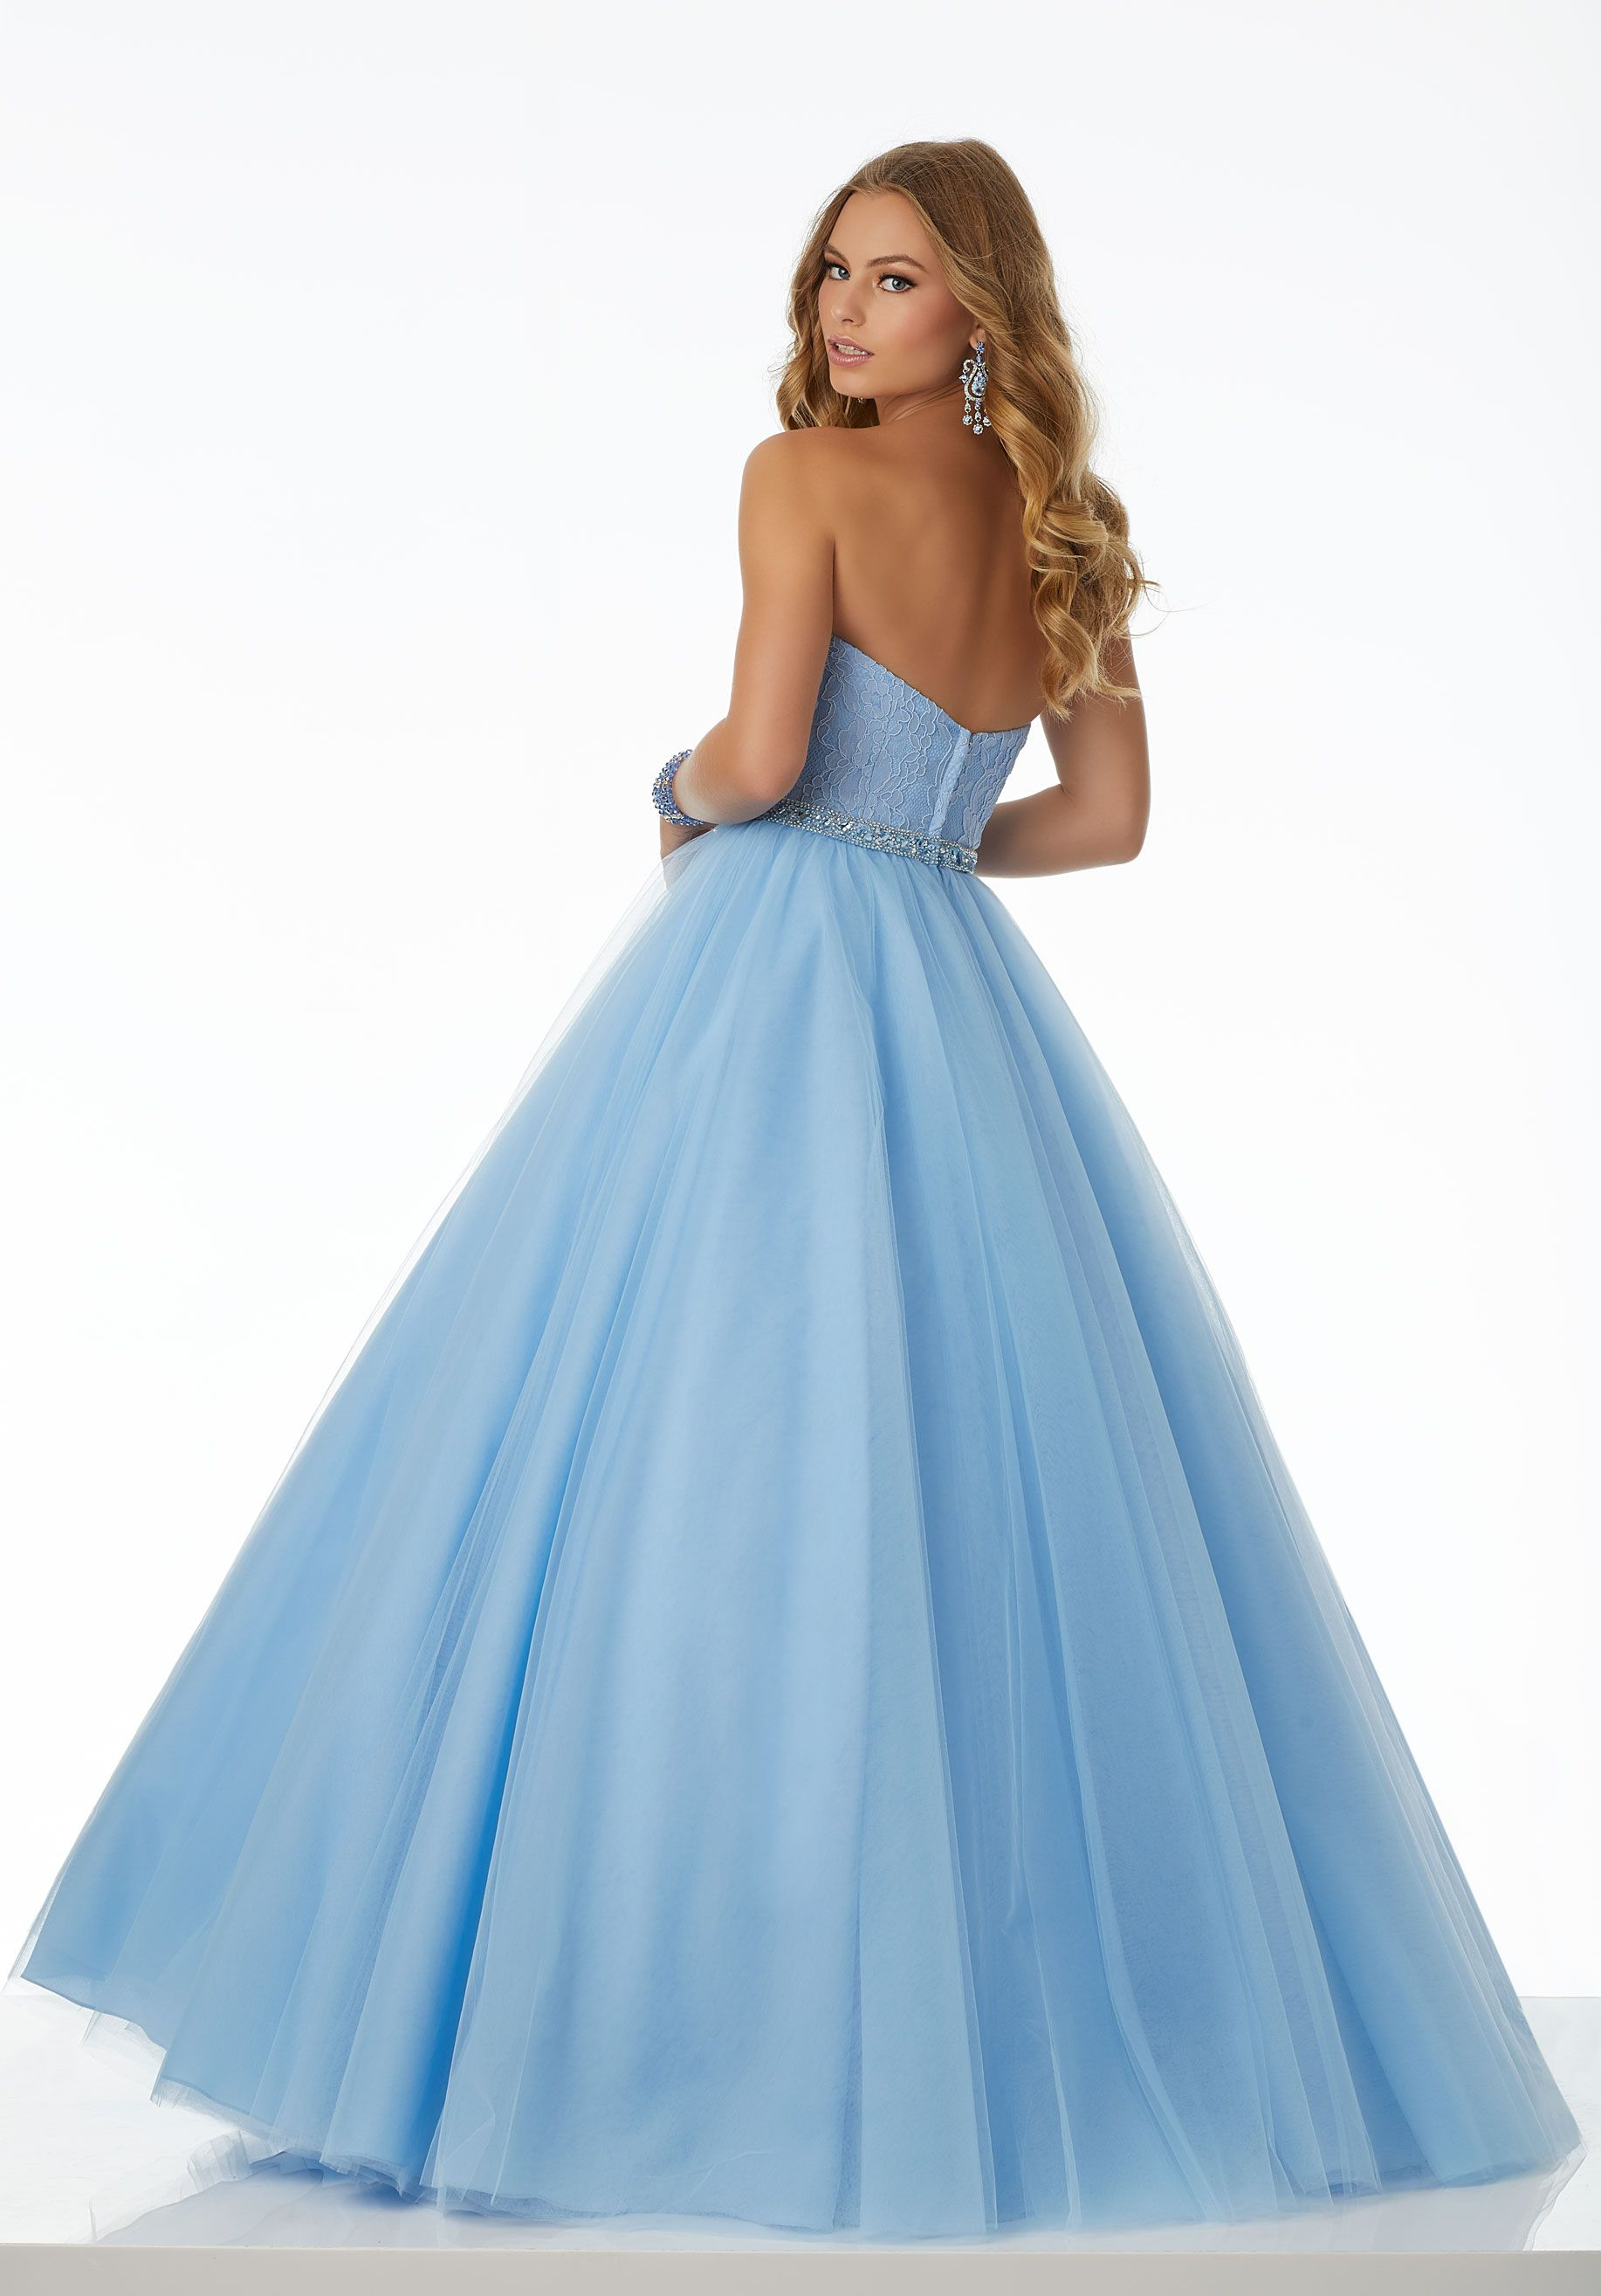 Sweet and simple tulle ballgown featuring lace bodice with deep